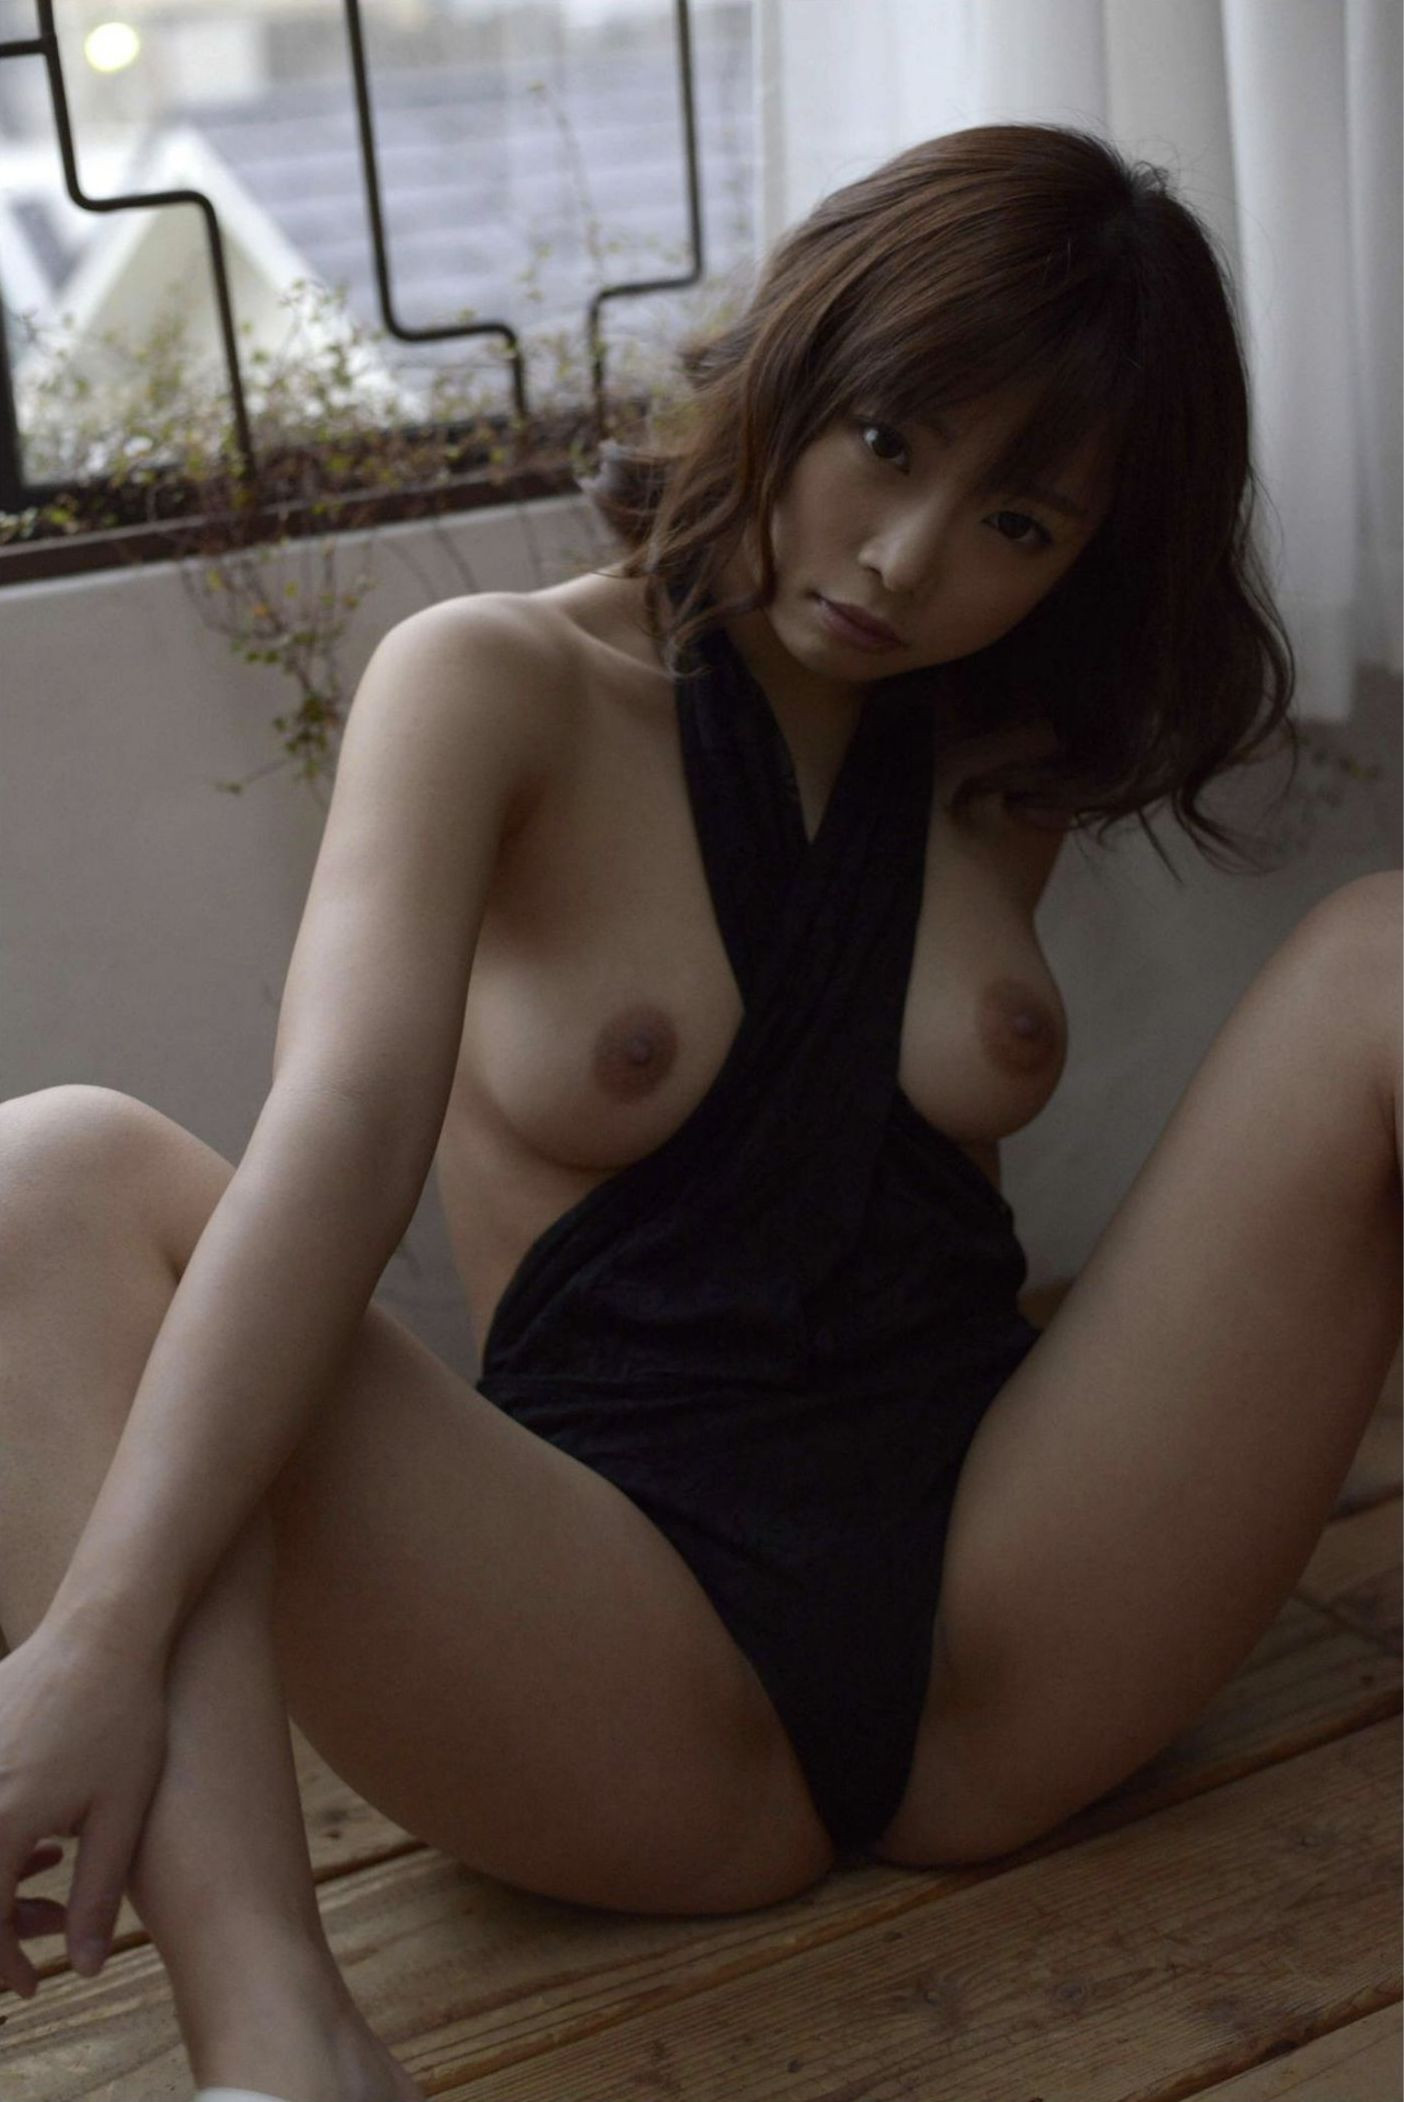 SOFT ON DEMAND GRAVURE COLLECTION 紗倉まな03 photo 021